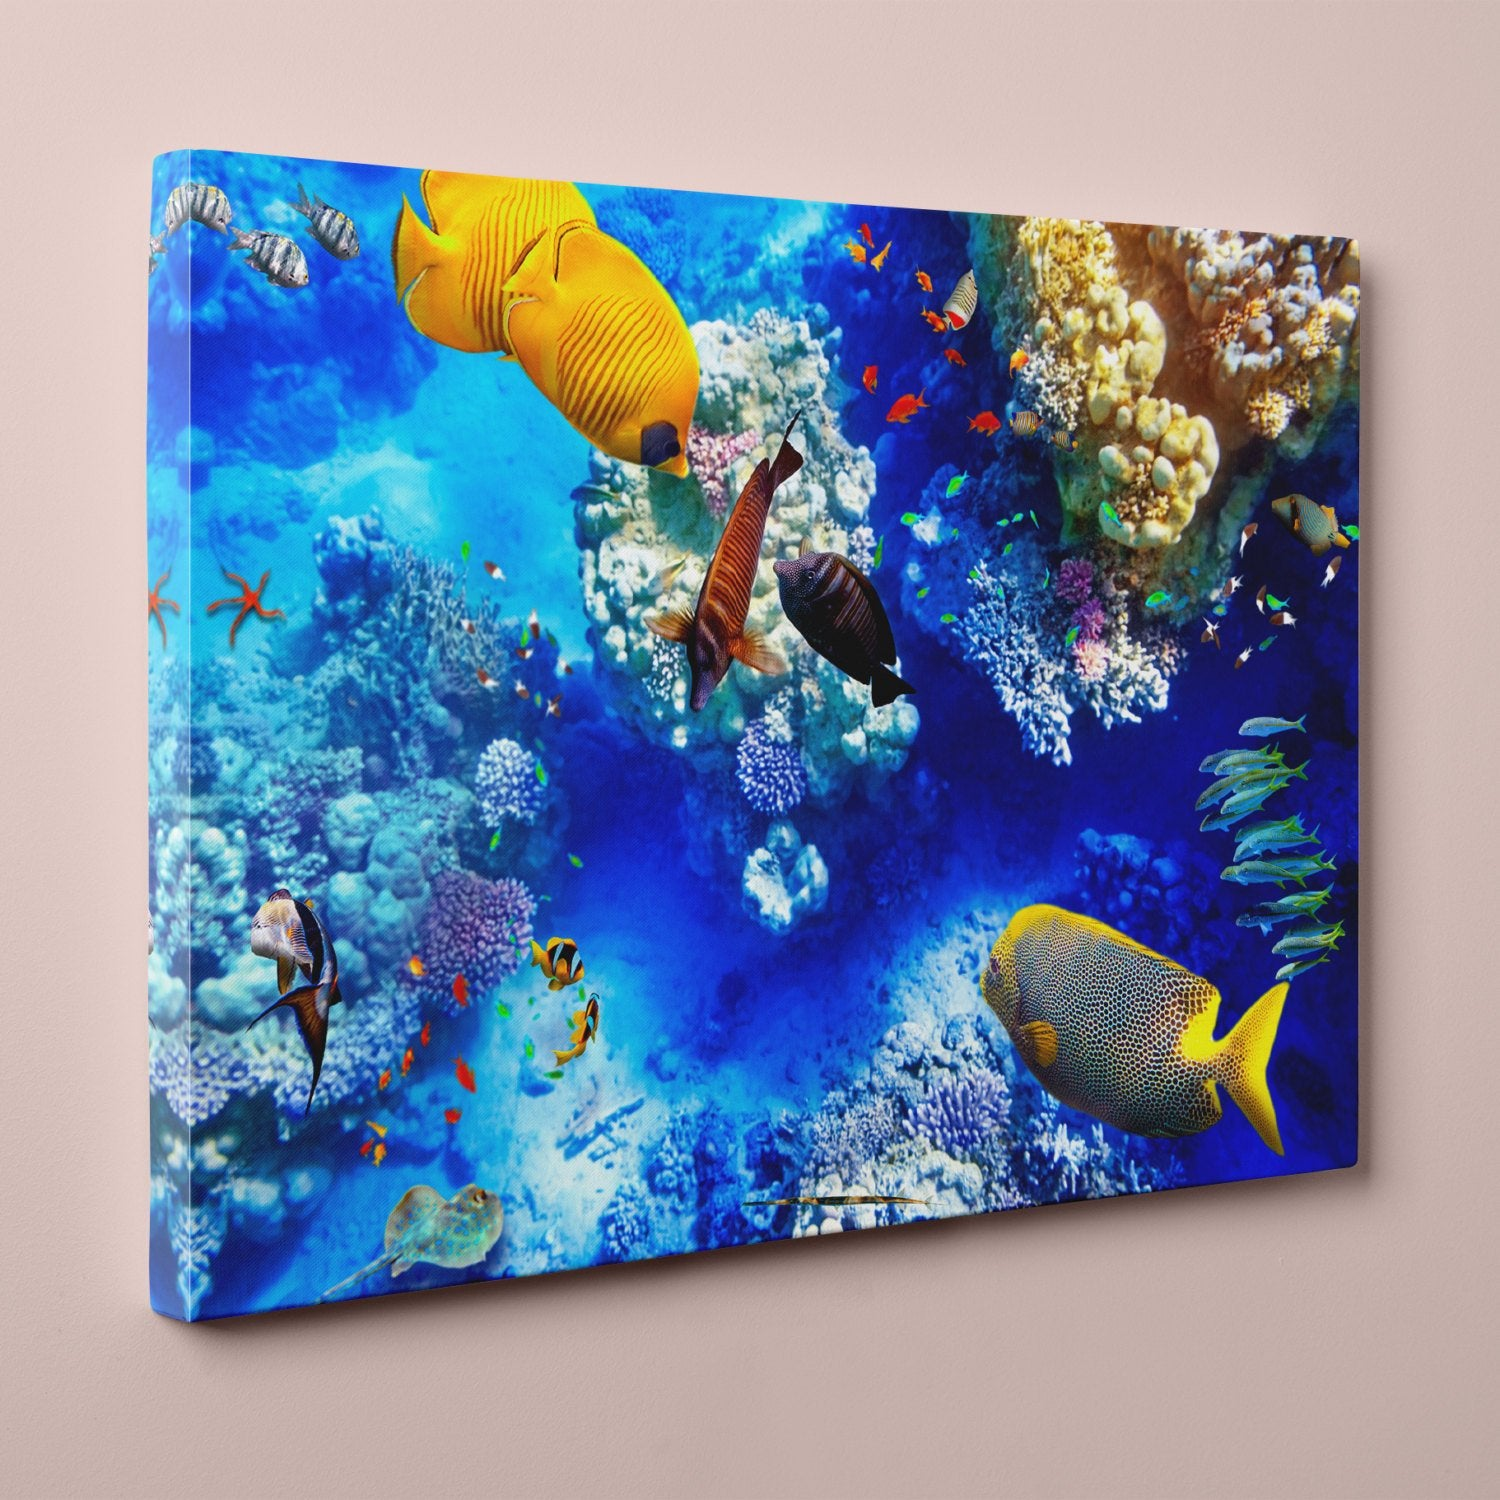 "Coral and Tropical Fish, Underwater Photo (12"" x 18"") - Canvas Wrap Print"